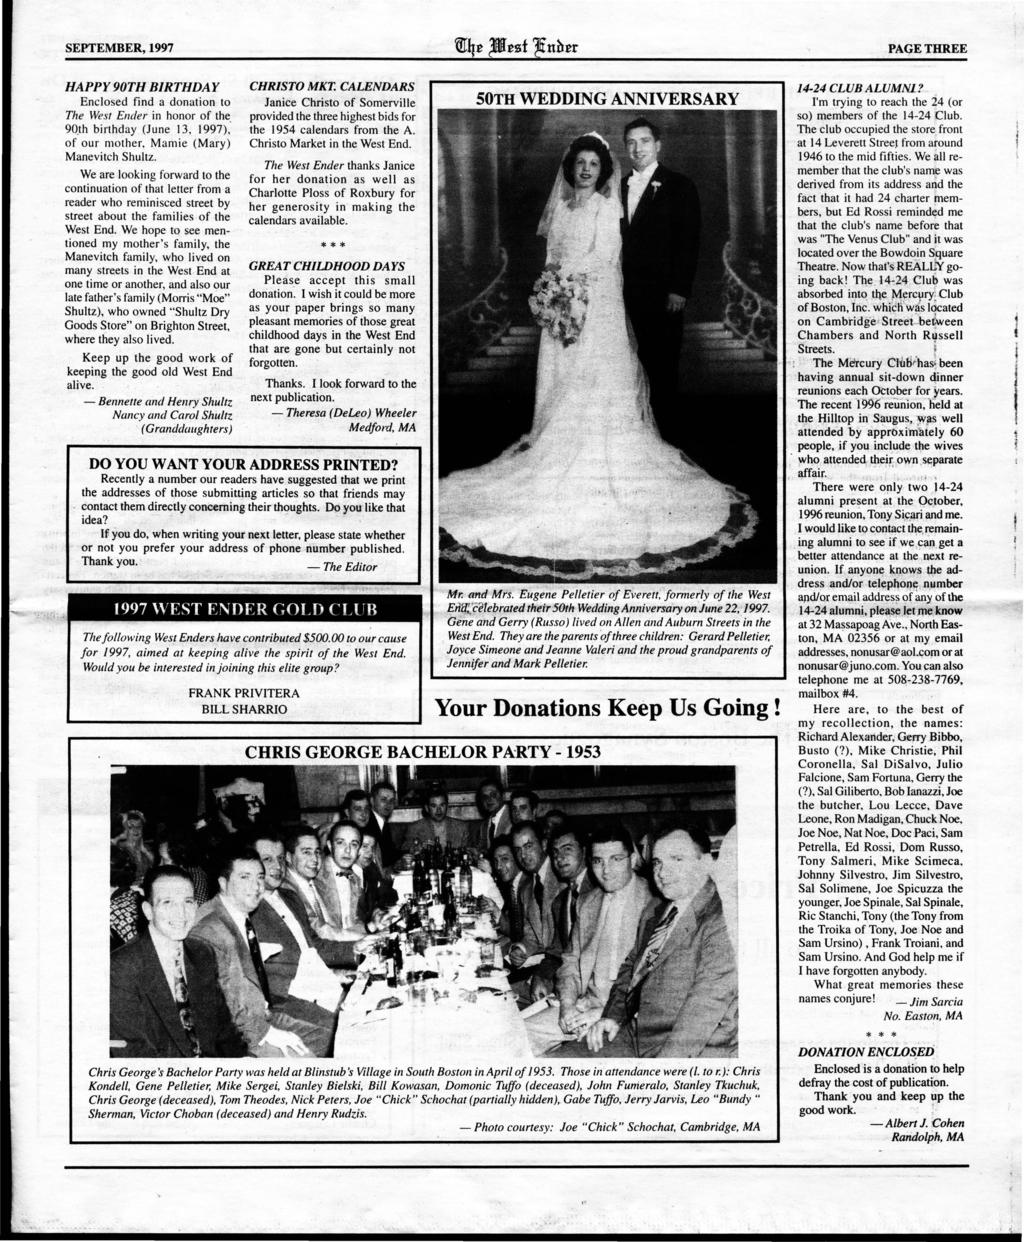 PAGE THREE HAPPY 90TH BRTHDAY Enclosed find a donation to The West Ender in honor of the 90_th birthday (June 13, 1997): of our mother, Mamie (Mary) Manevitch Shultz We are looking forward to the